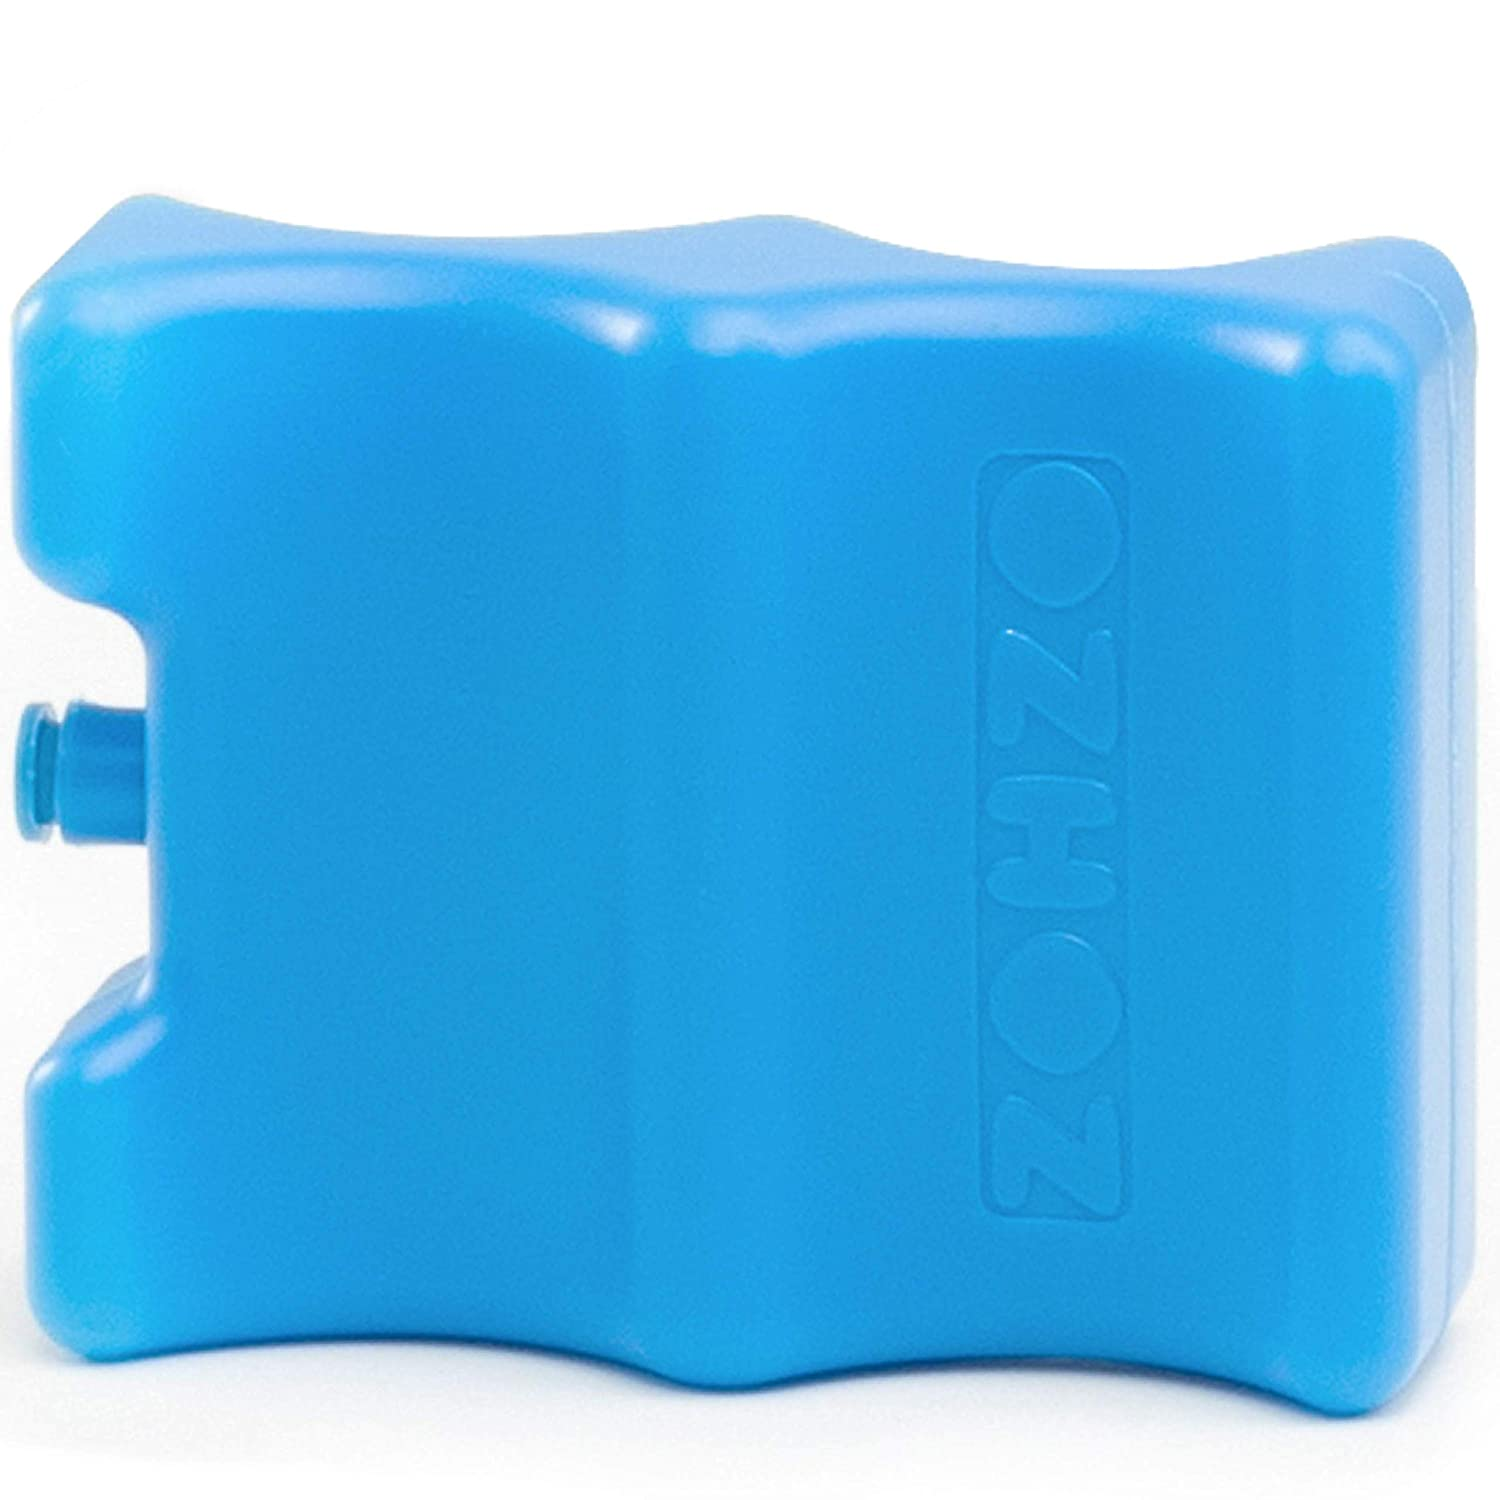 Zohzo Breastmilk Ice Pack - Contoured Ice Pack for Baby Bottle Storage in Milk Cooler (Small, 1 Pack)